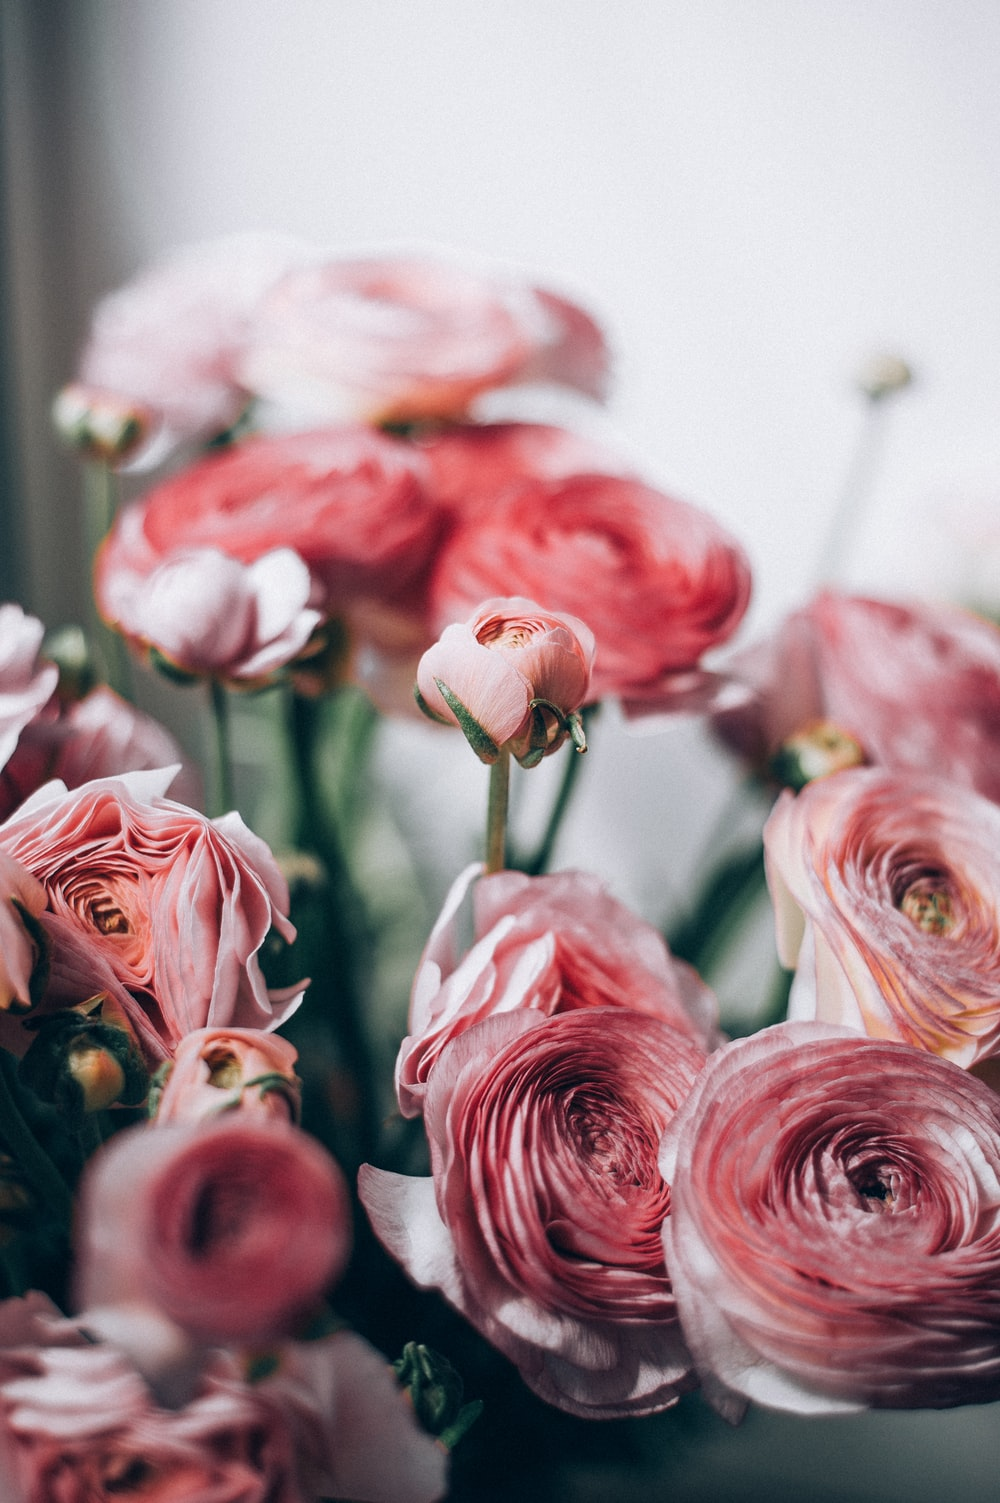 pink and white roses in close up photography